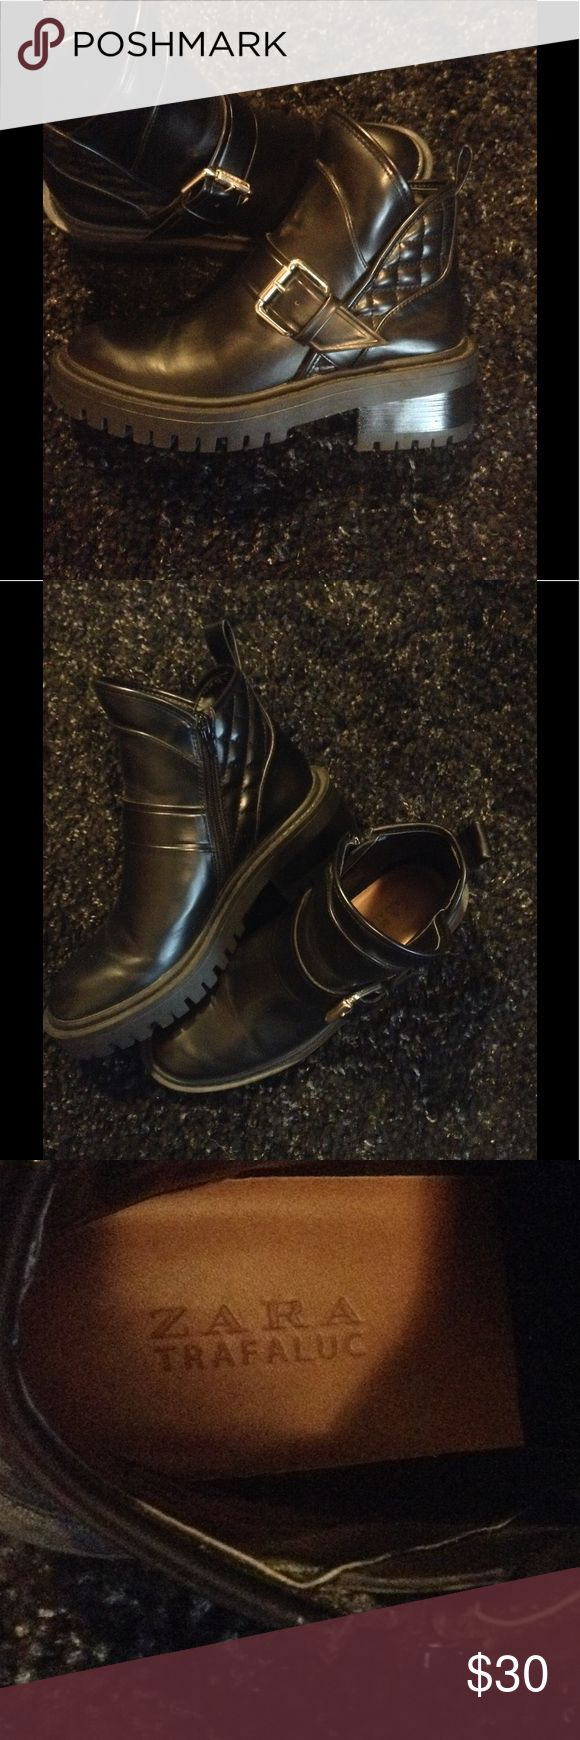 Zara Trafaluc Moto Boot Black Moto boot with thick sole, side zip with buckle accent size 37 euro, 7 US Zara Shoes Combat & Moto Boots